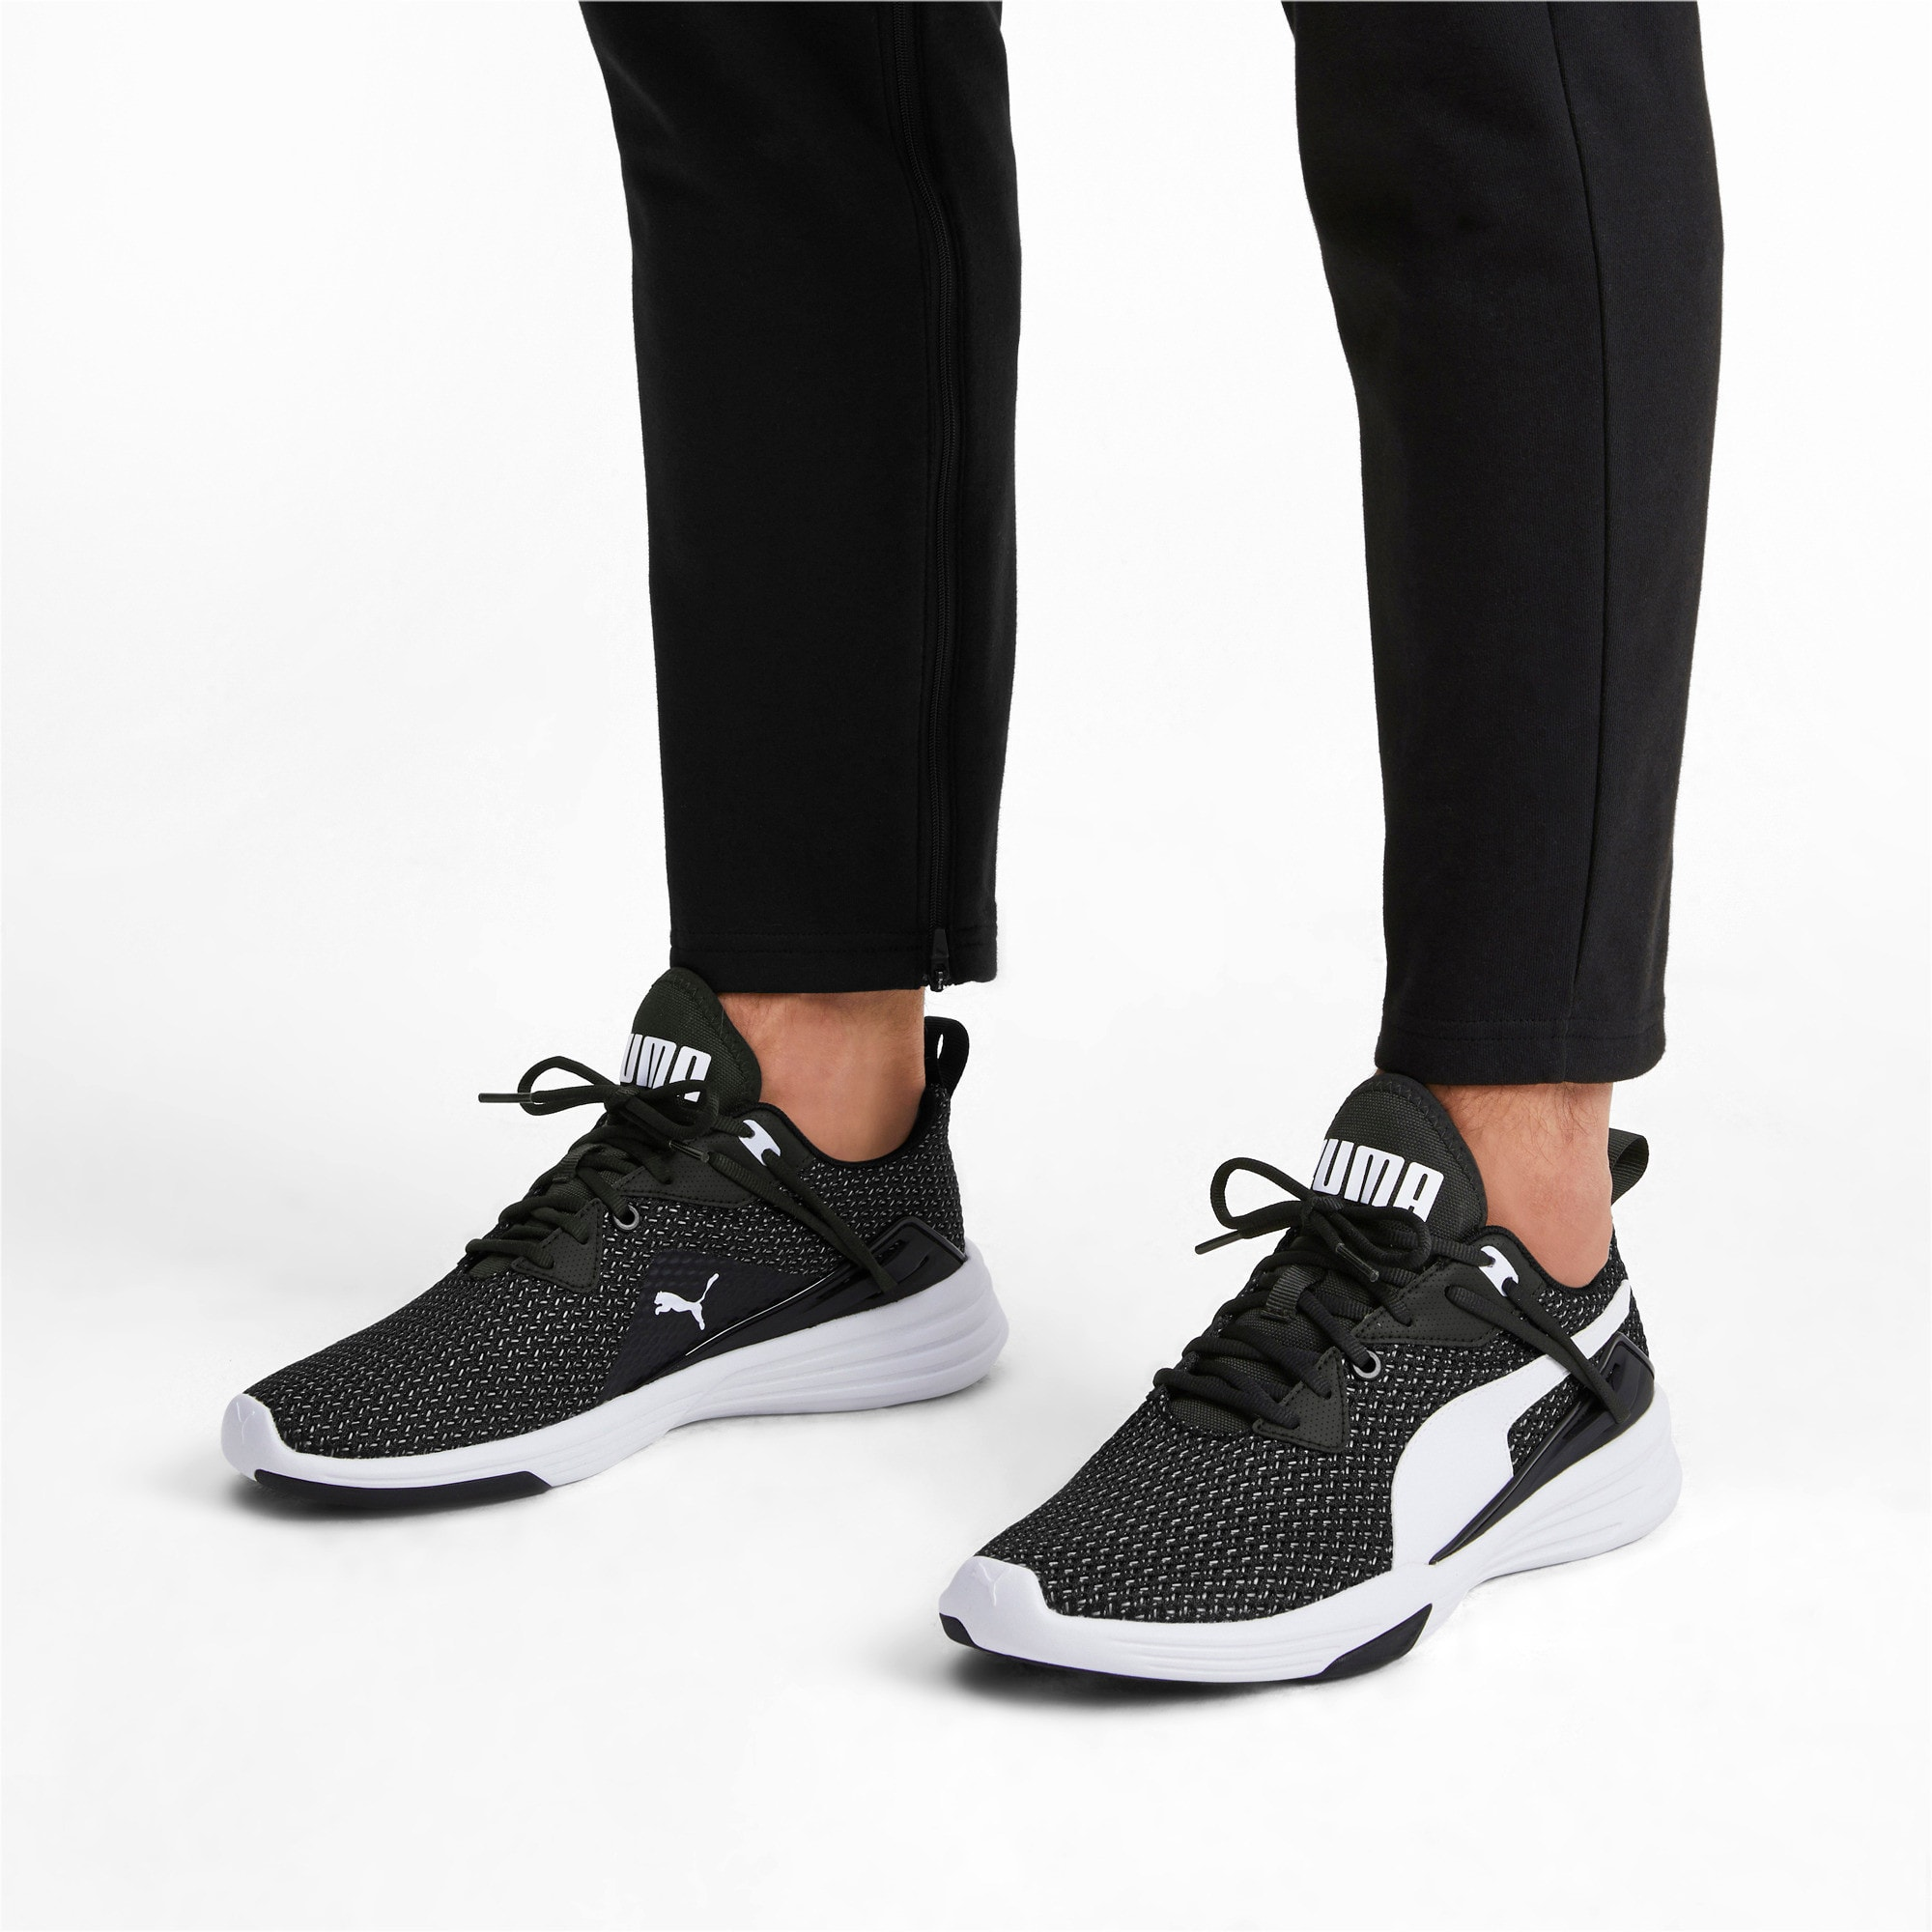 Thumbnail 3 of Aura XT Men's Trainers, Puma Black-Puma White, medium-IND